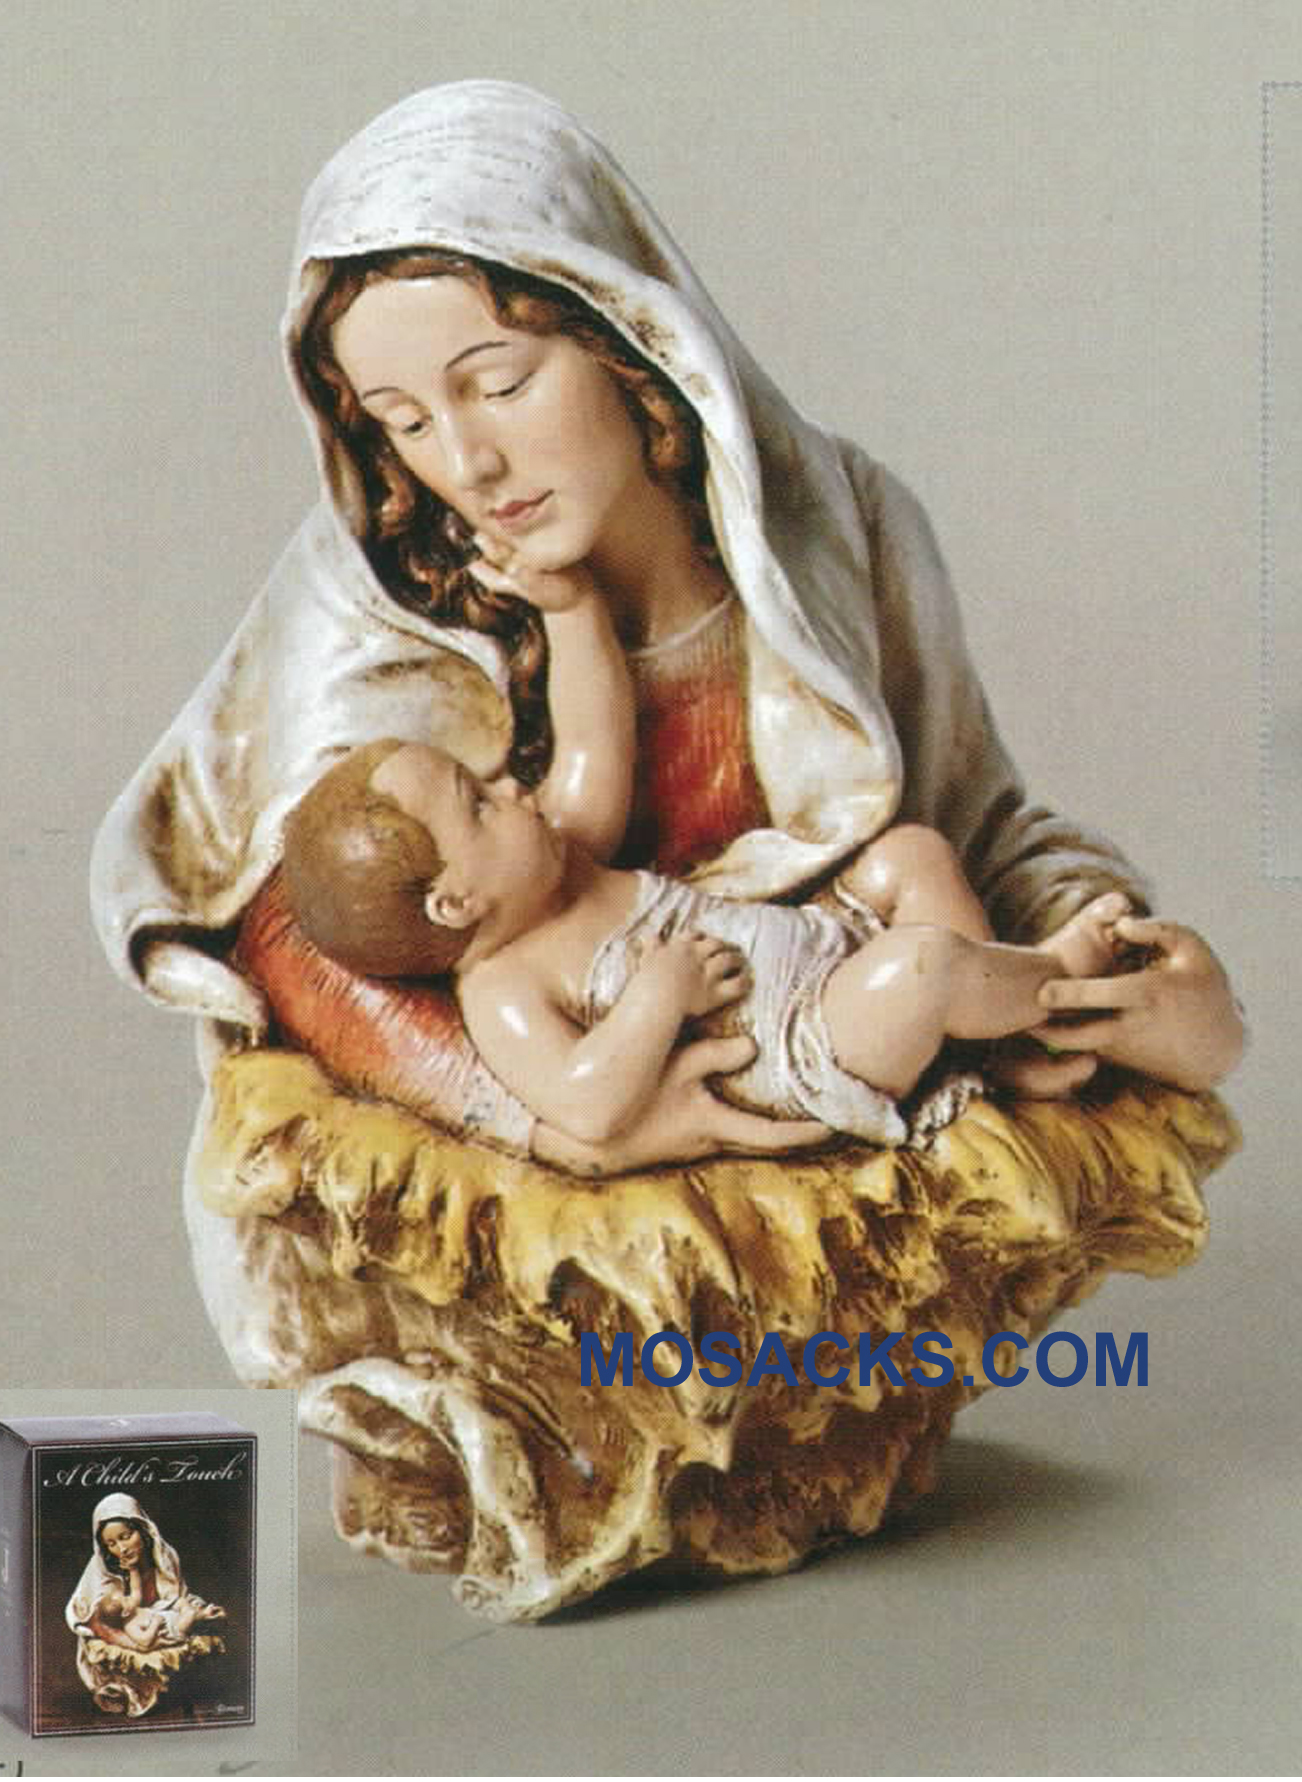 Joseph's Studio A Child's Touch Madonna & Child Bust 20-66504